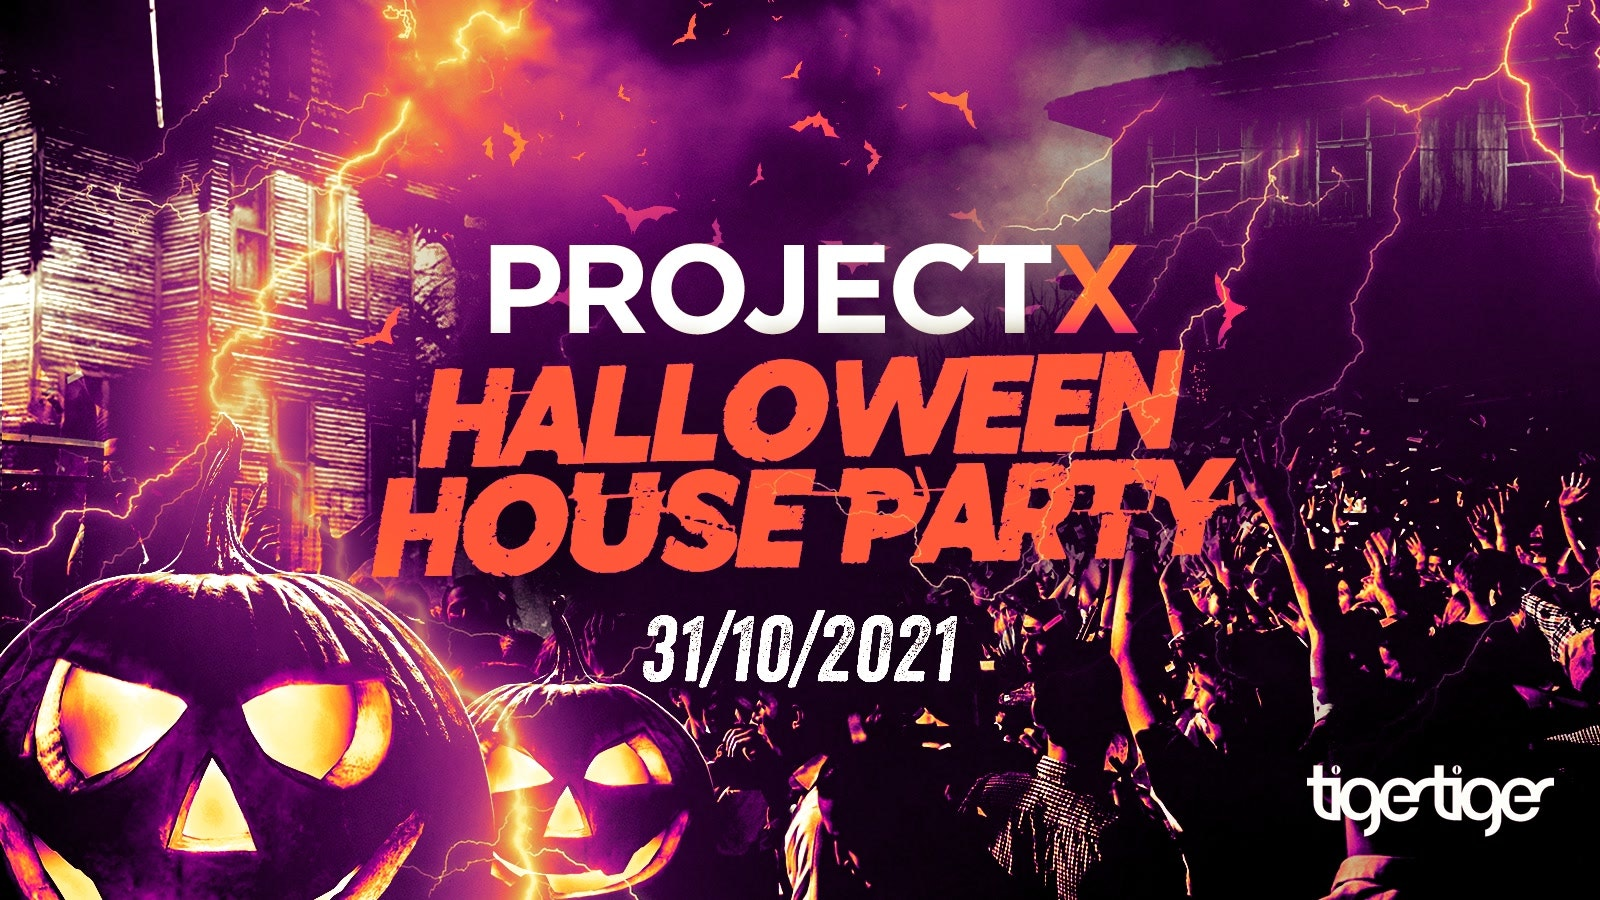 The 2021 Project X Halloween House Party // This event has SOLD OUT every year!